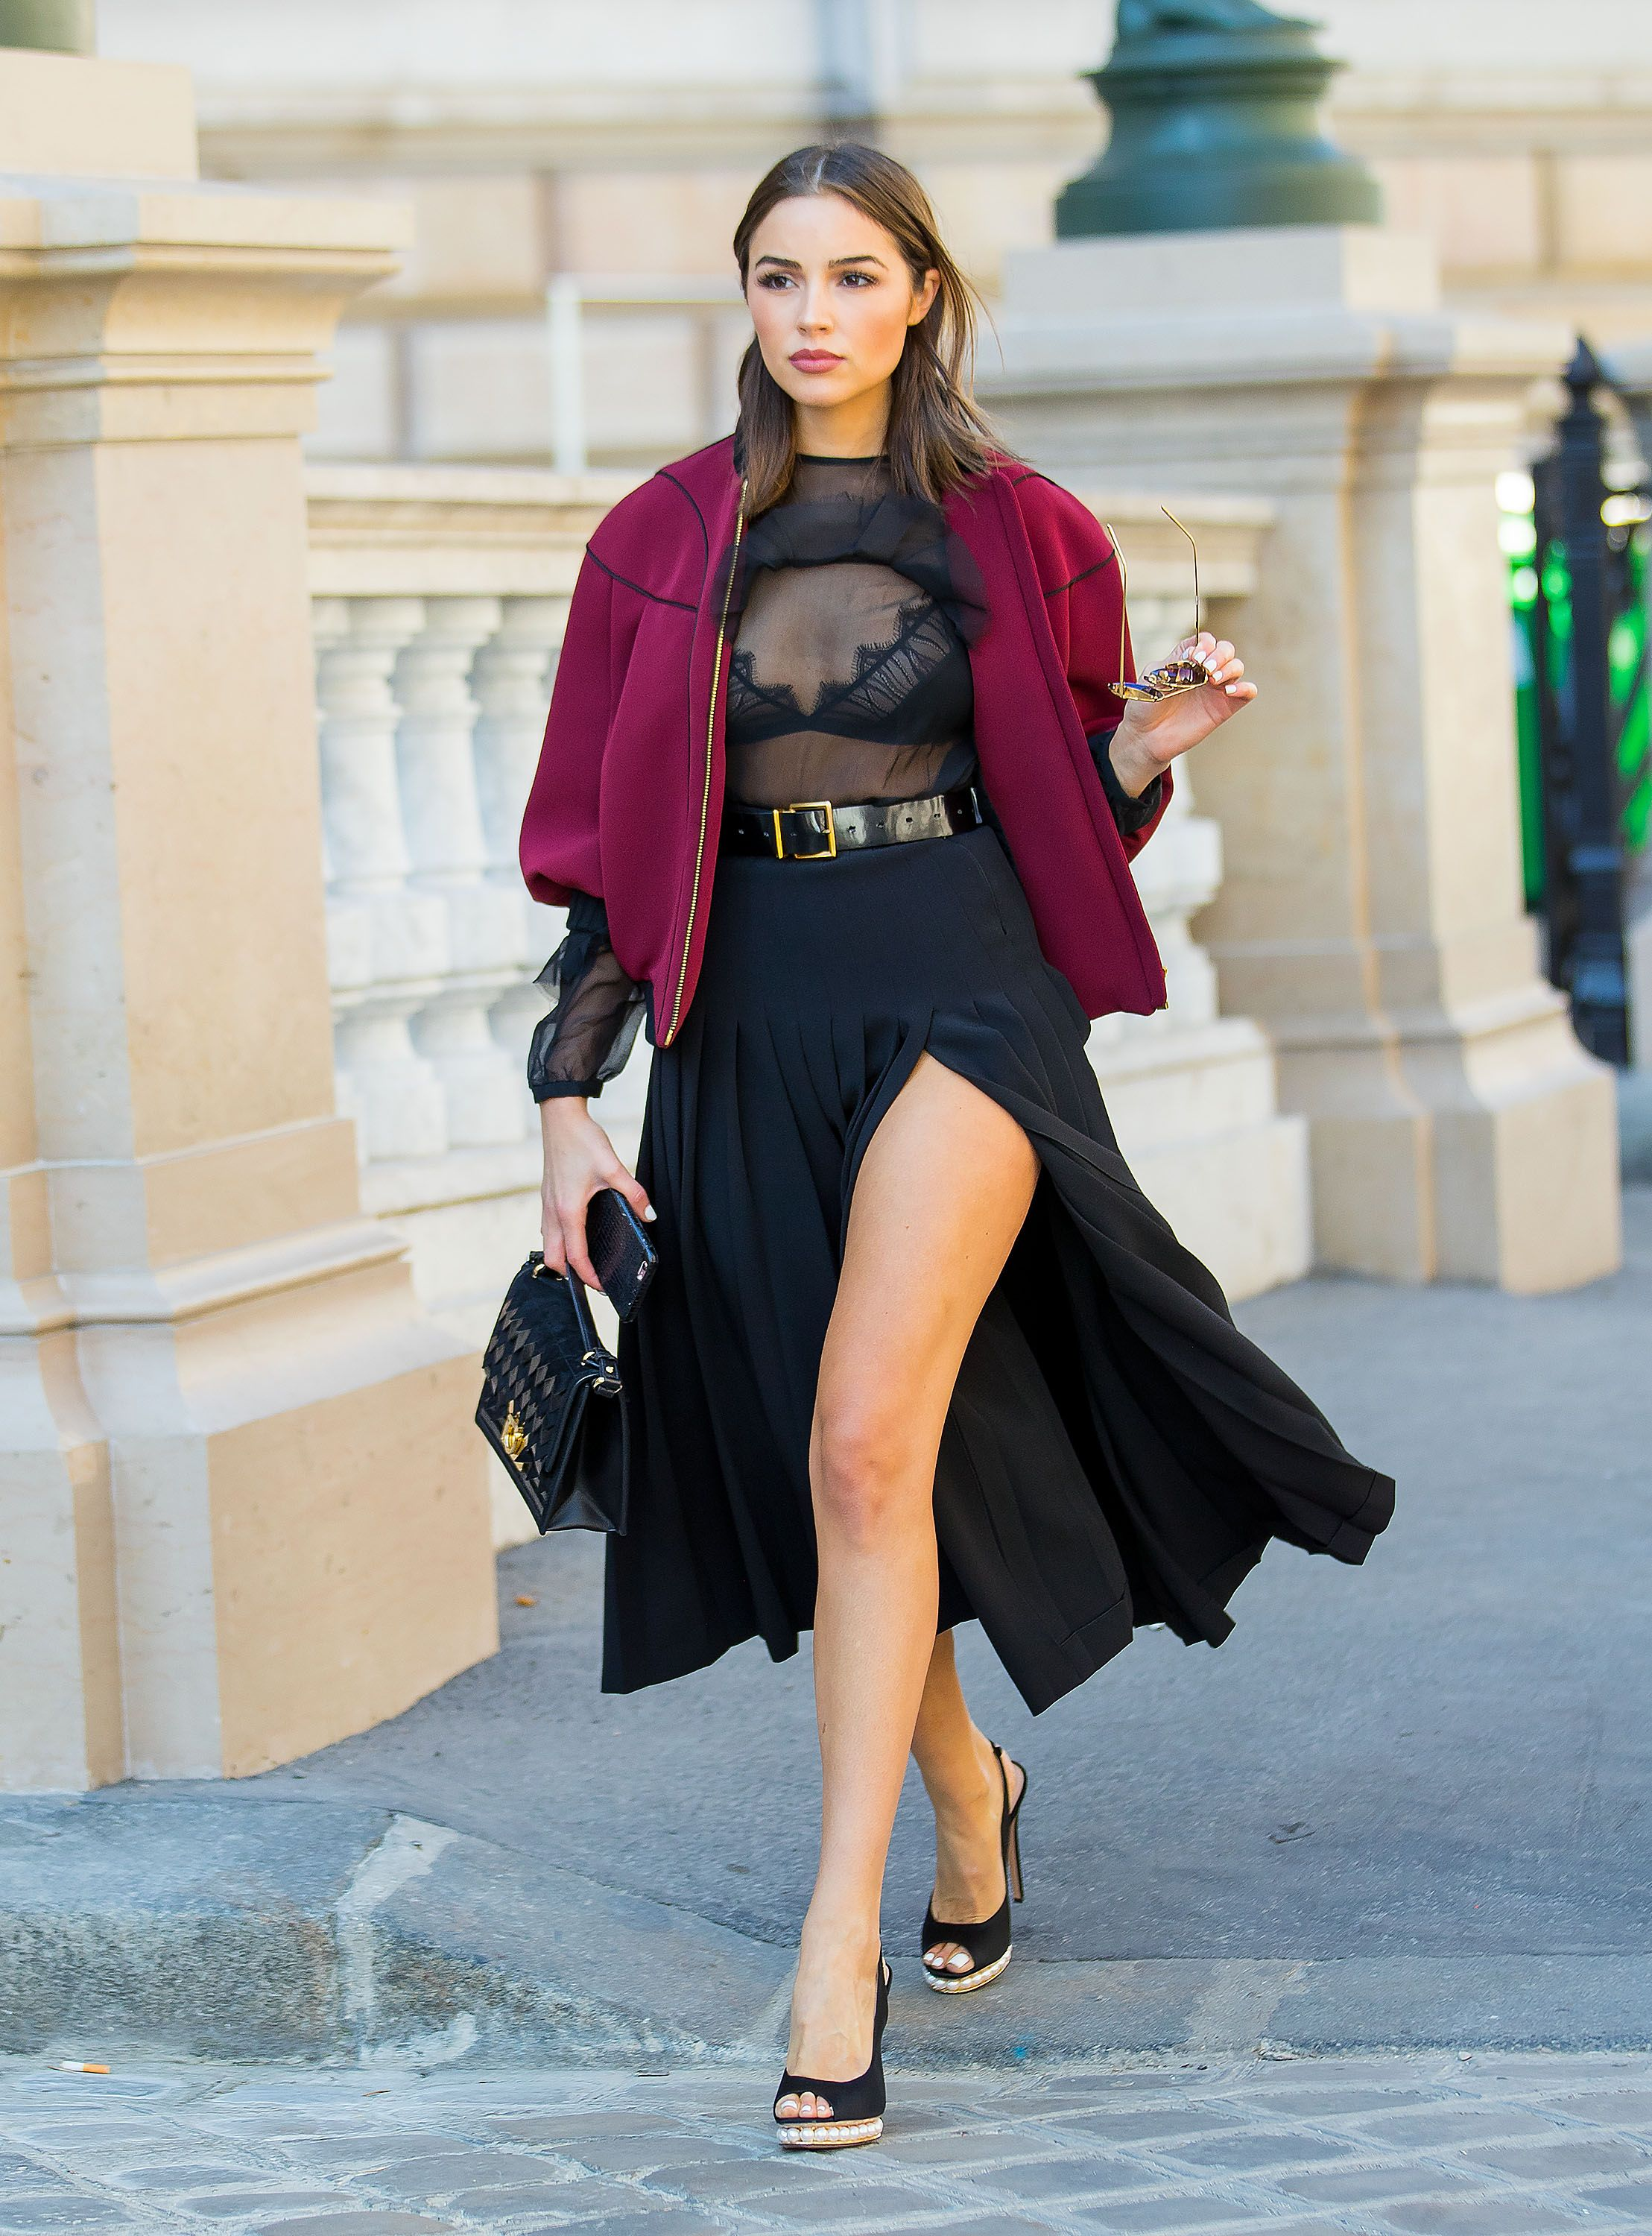 Olivia culpo is stylish soho in nyc nudes (53 image)